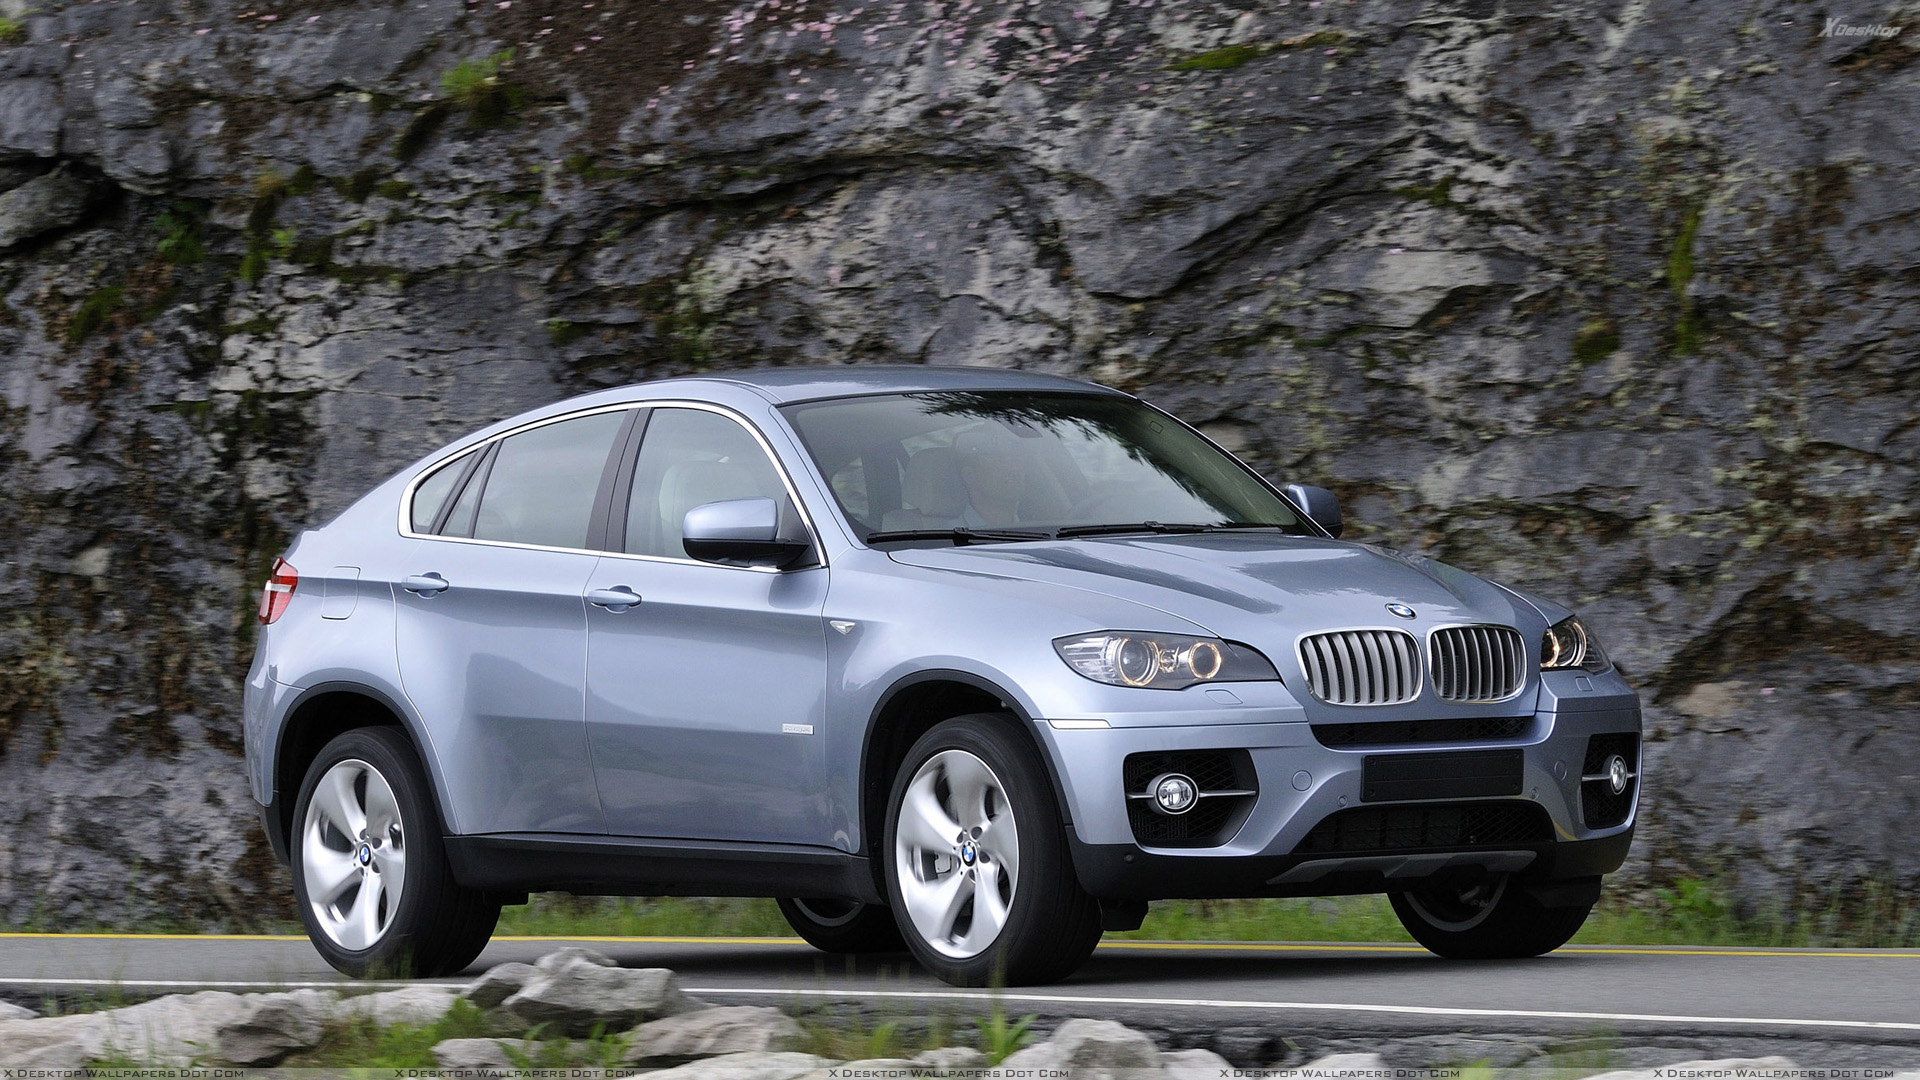 You Are Viewing Wallpaper Titled Side Front Pose Of 2010 BMW ActiveHybrid X6